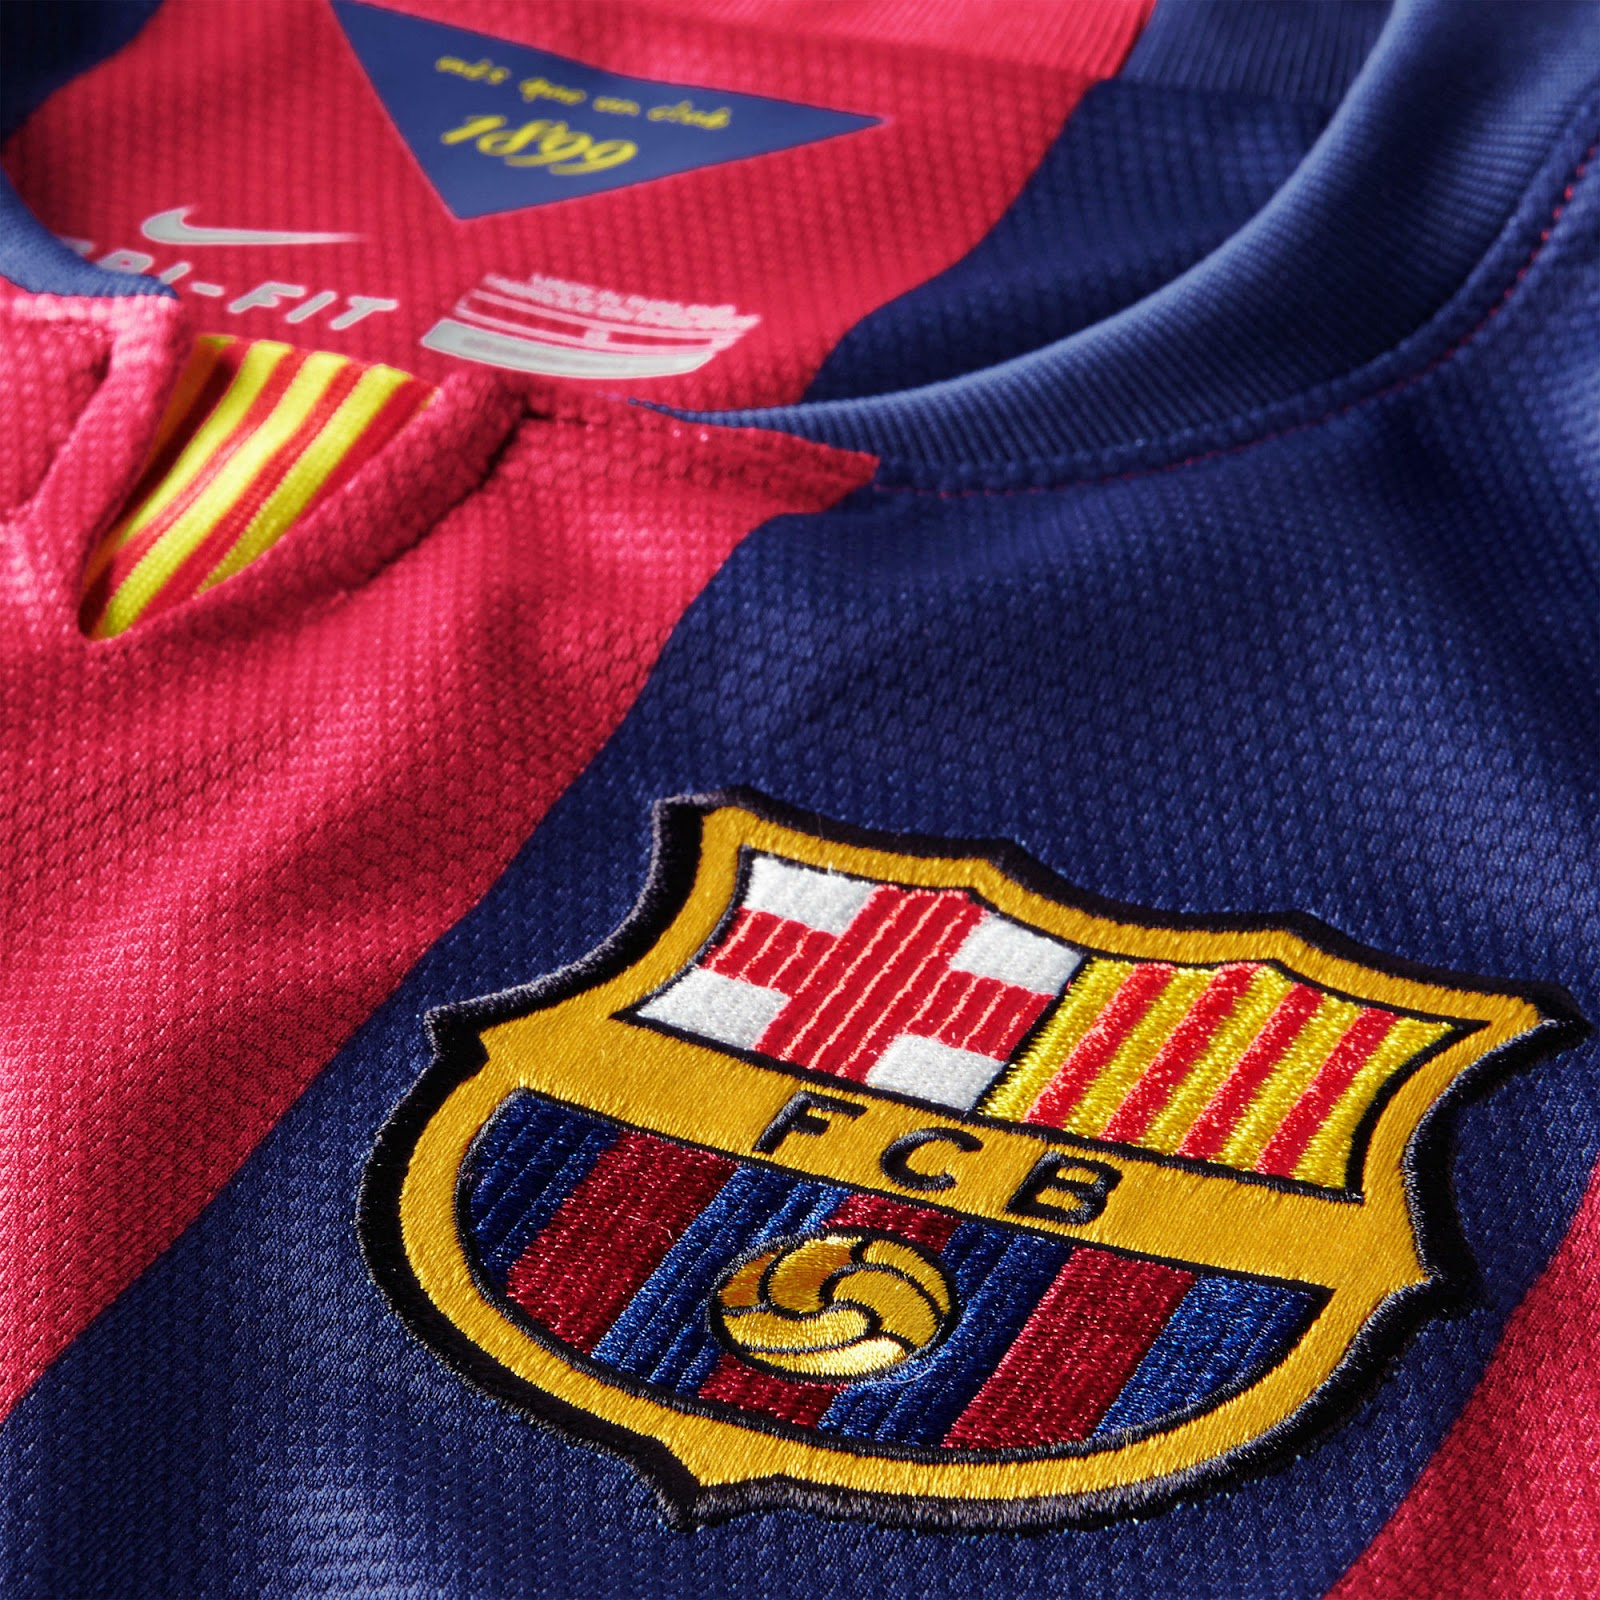 141e6b4b5e4 The Barcelona 14-15 Home Shorts are dark blue with a yellow Nike swoosh and  red lines on both sides. The new Barcelona 14-15 Home Kit ...